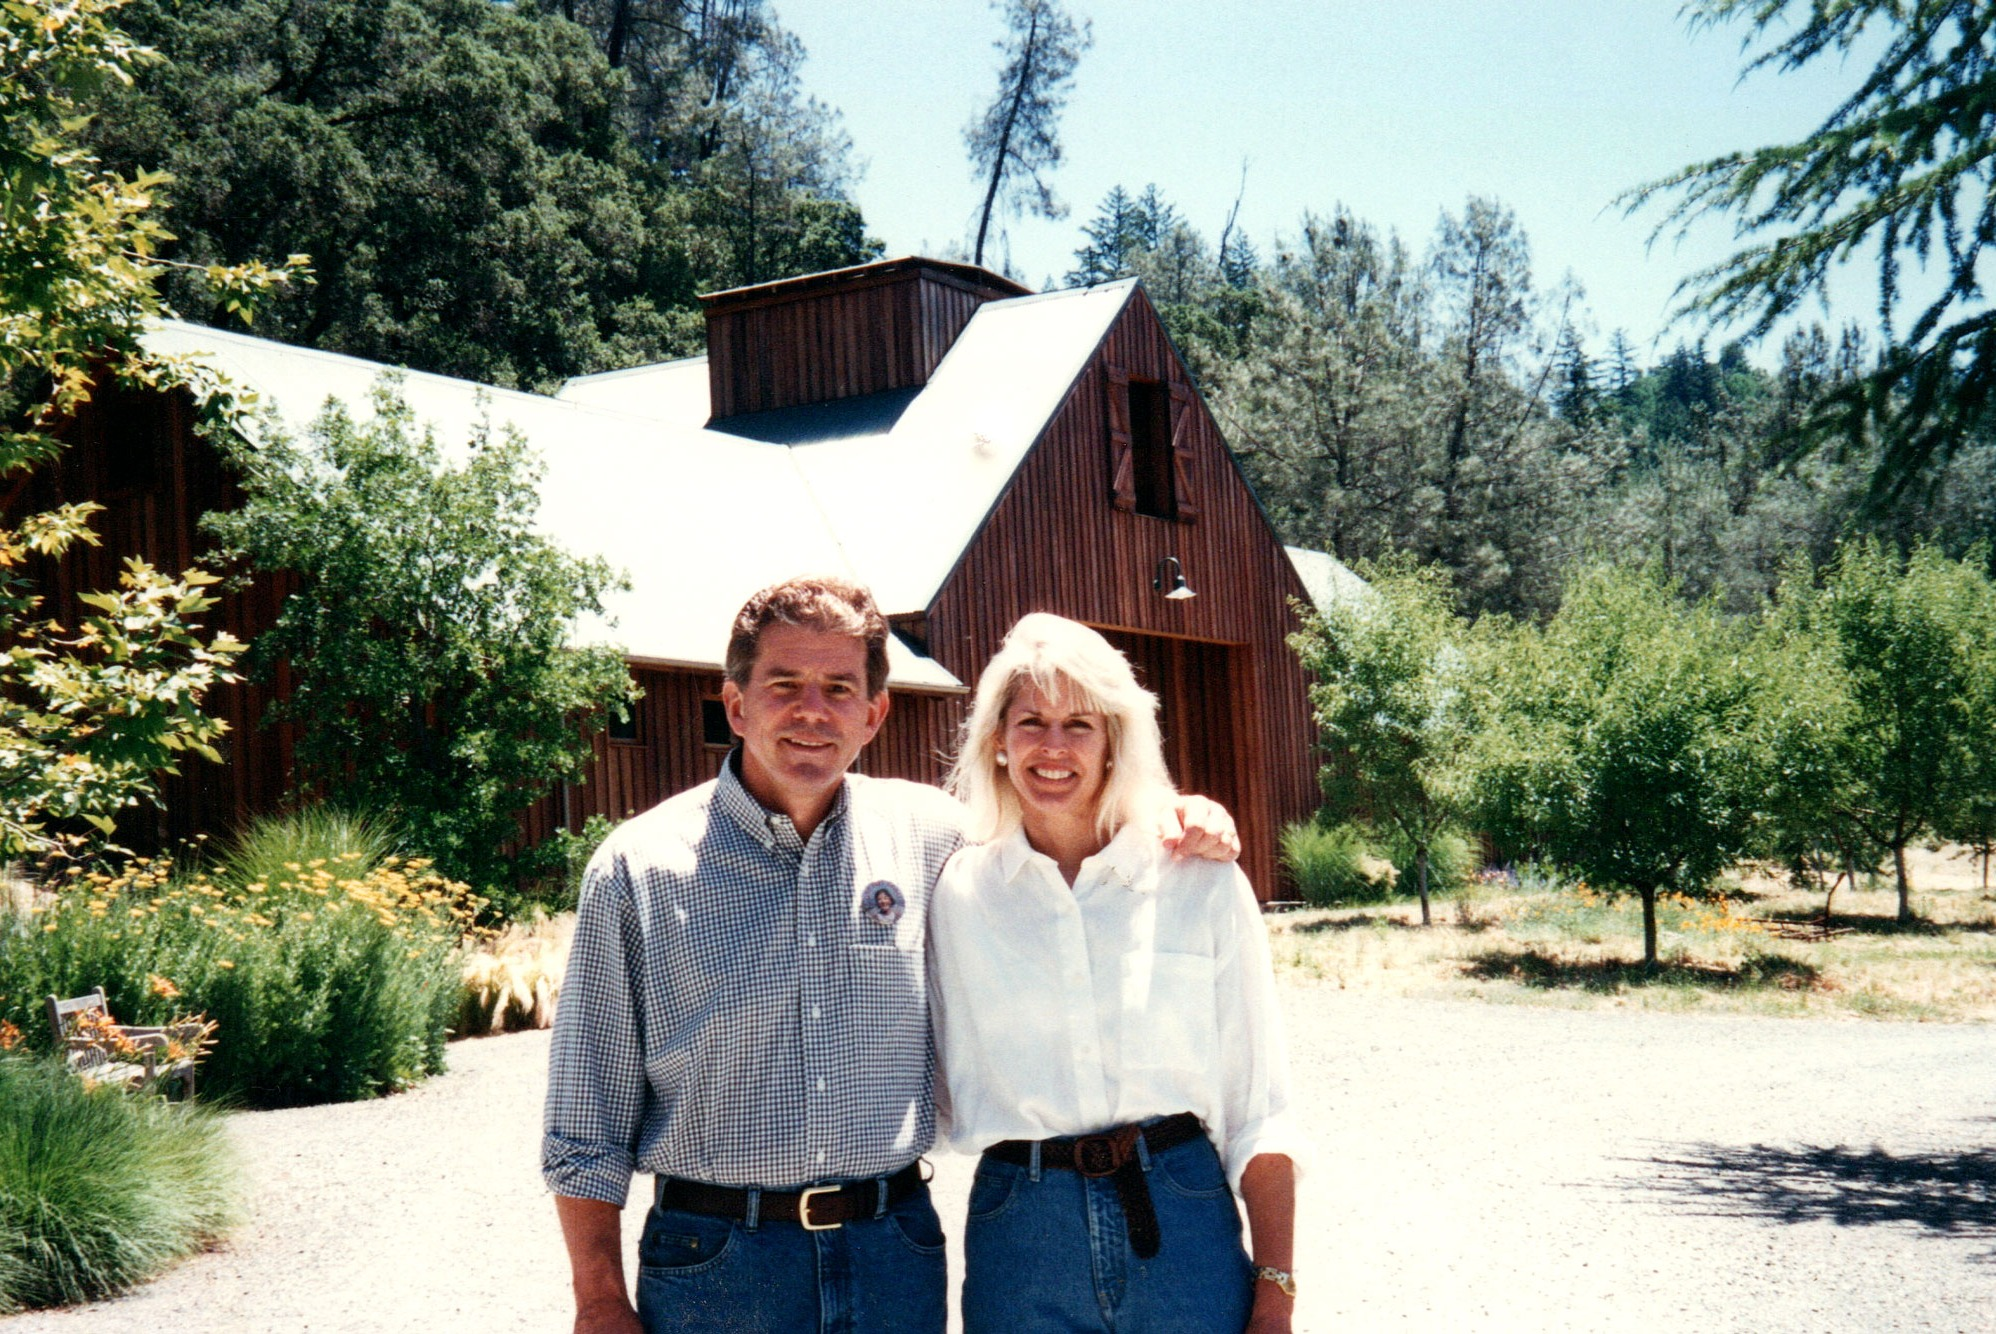 Daphne and Bart Araujo at Eisele Vineyard in front of the Araujo Estate Winery. (1996)